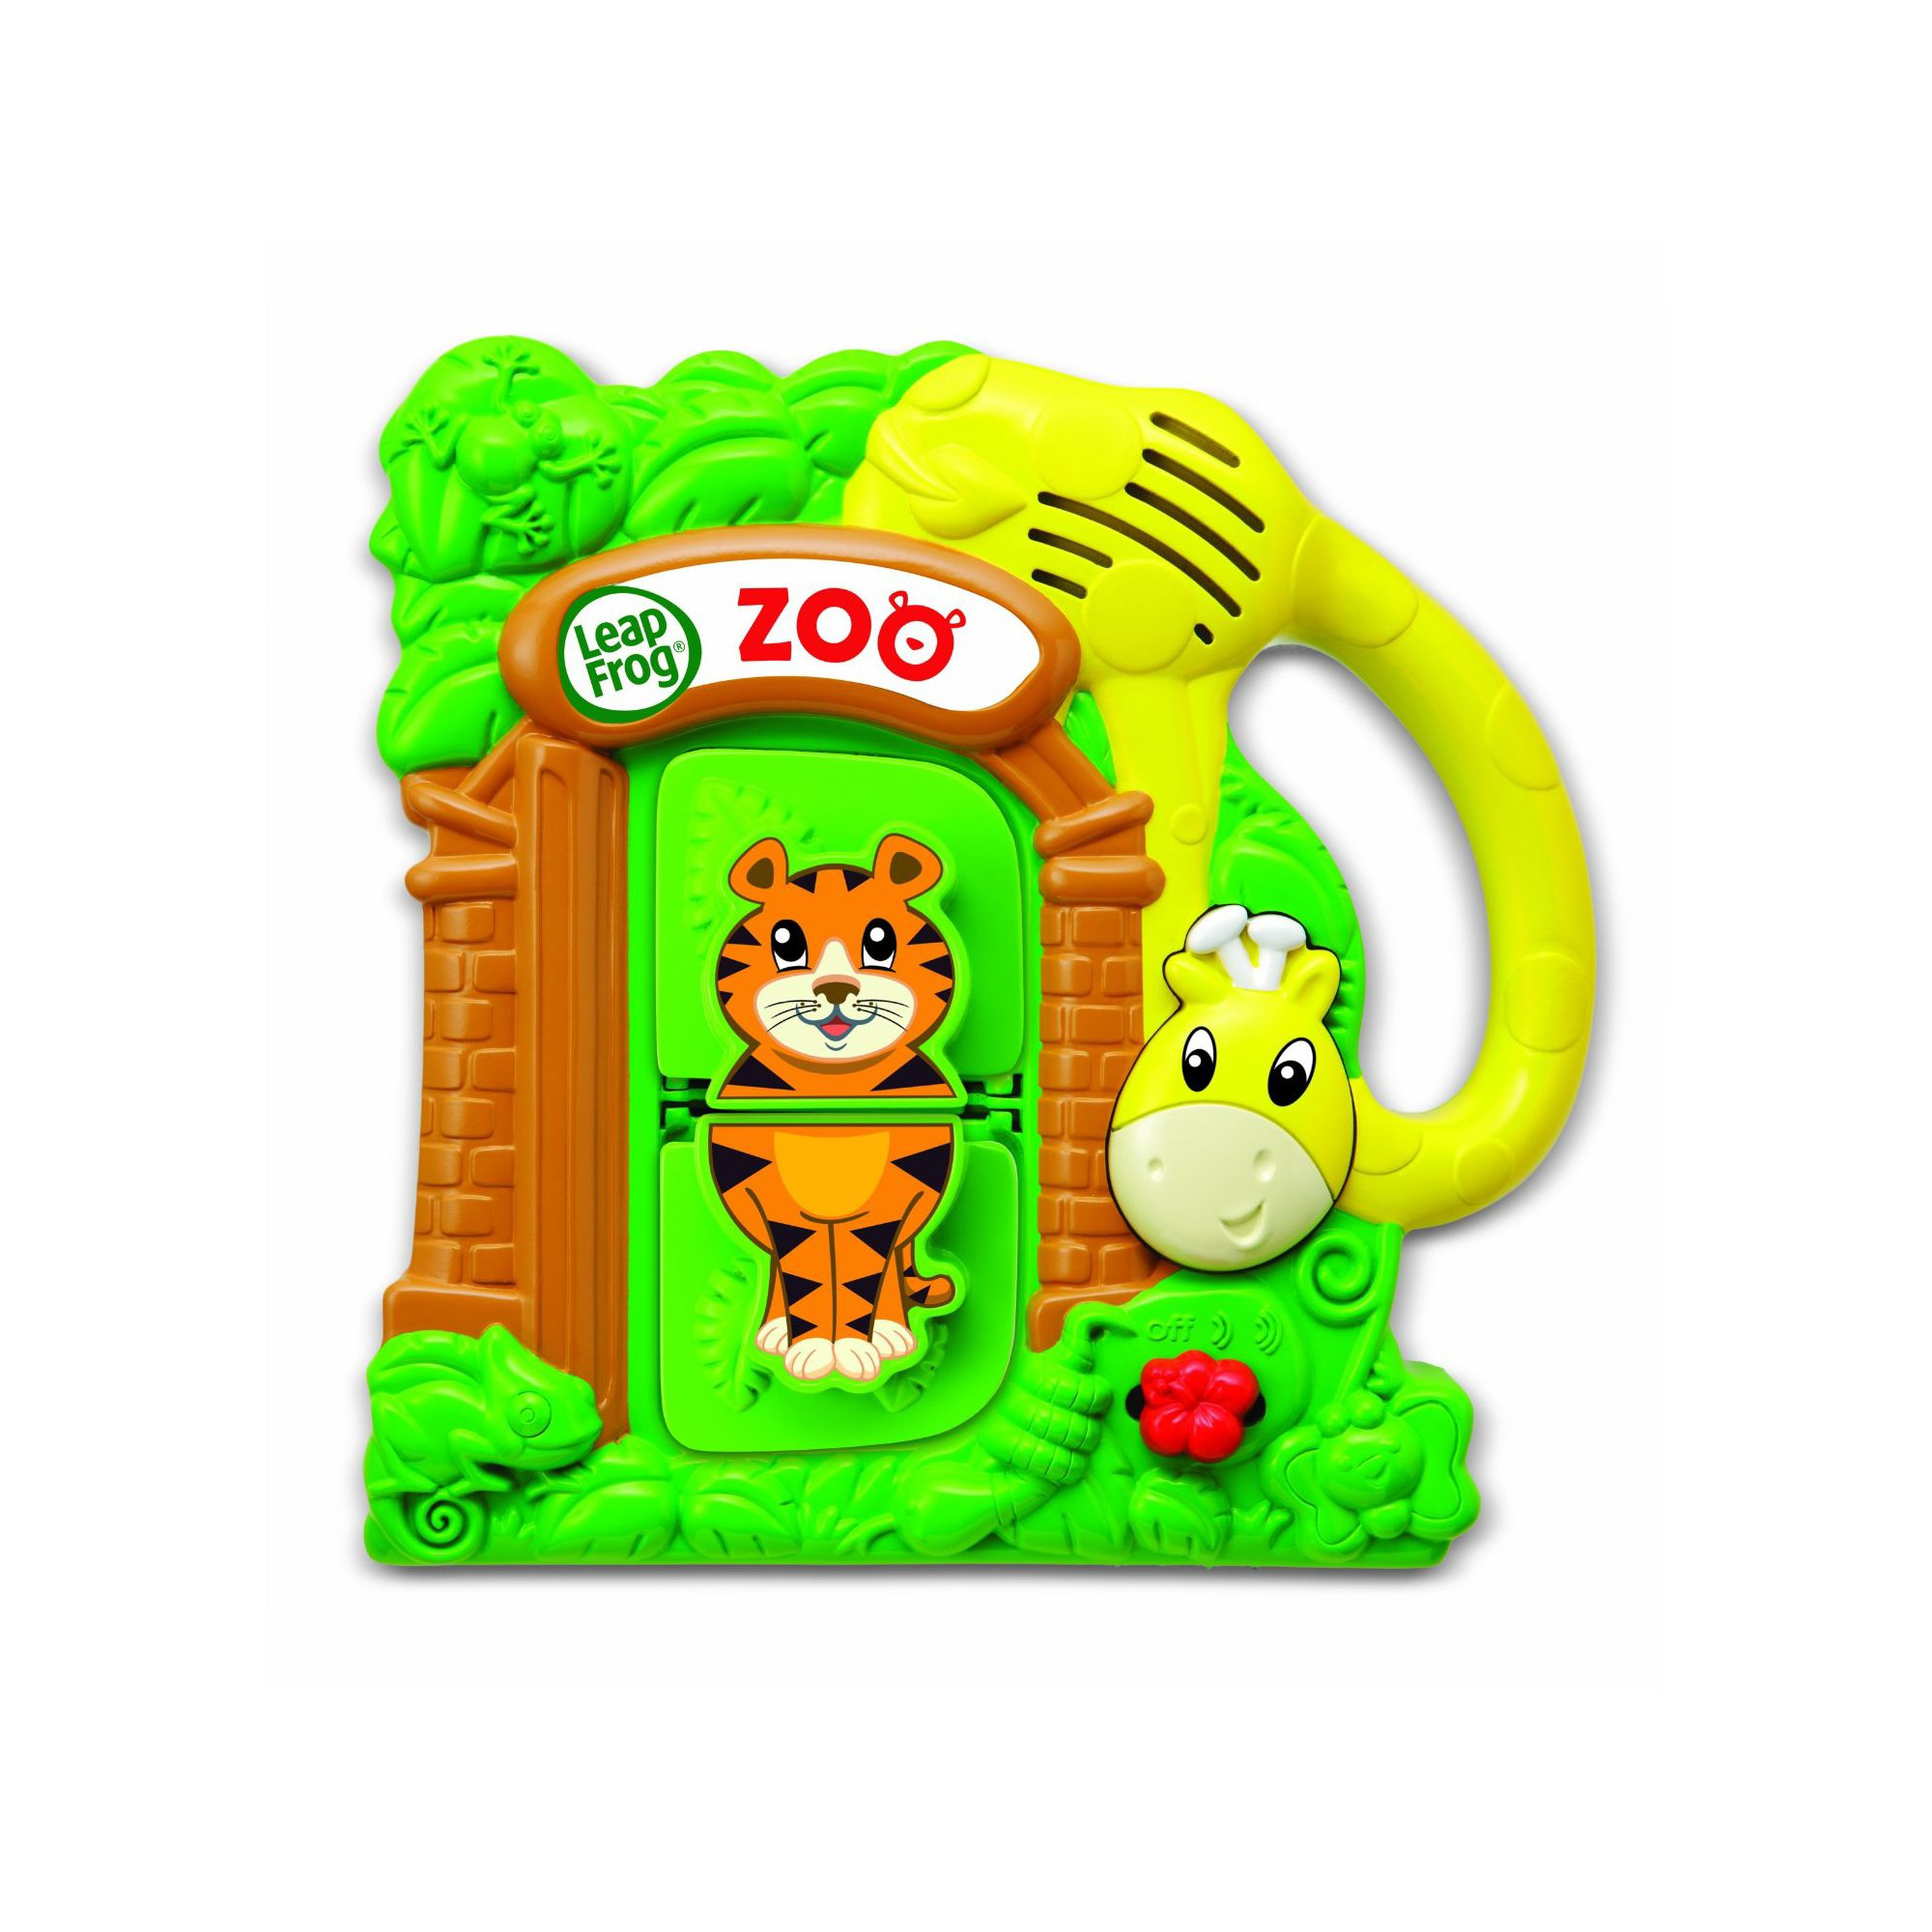 Leapfrog learn and groove musical wand